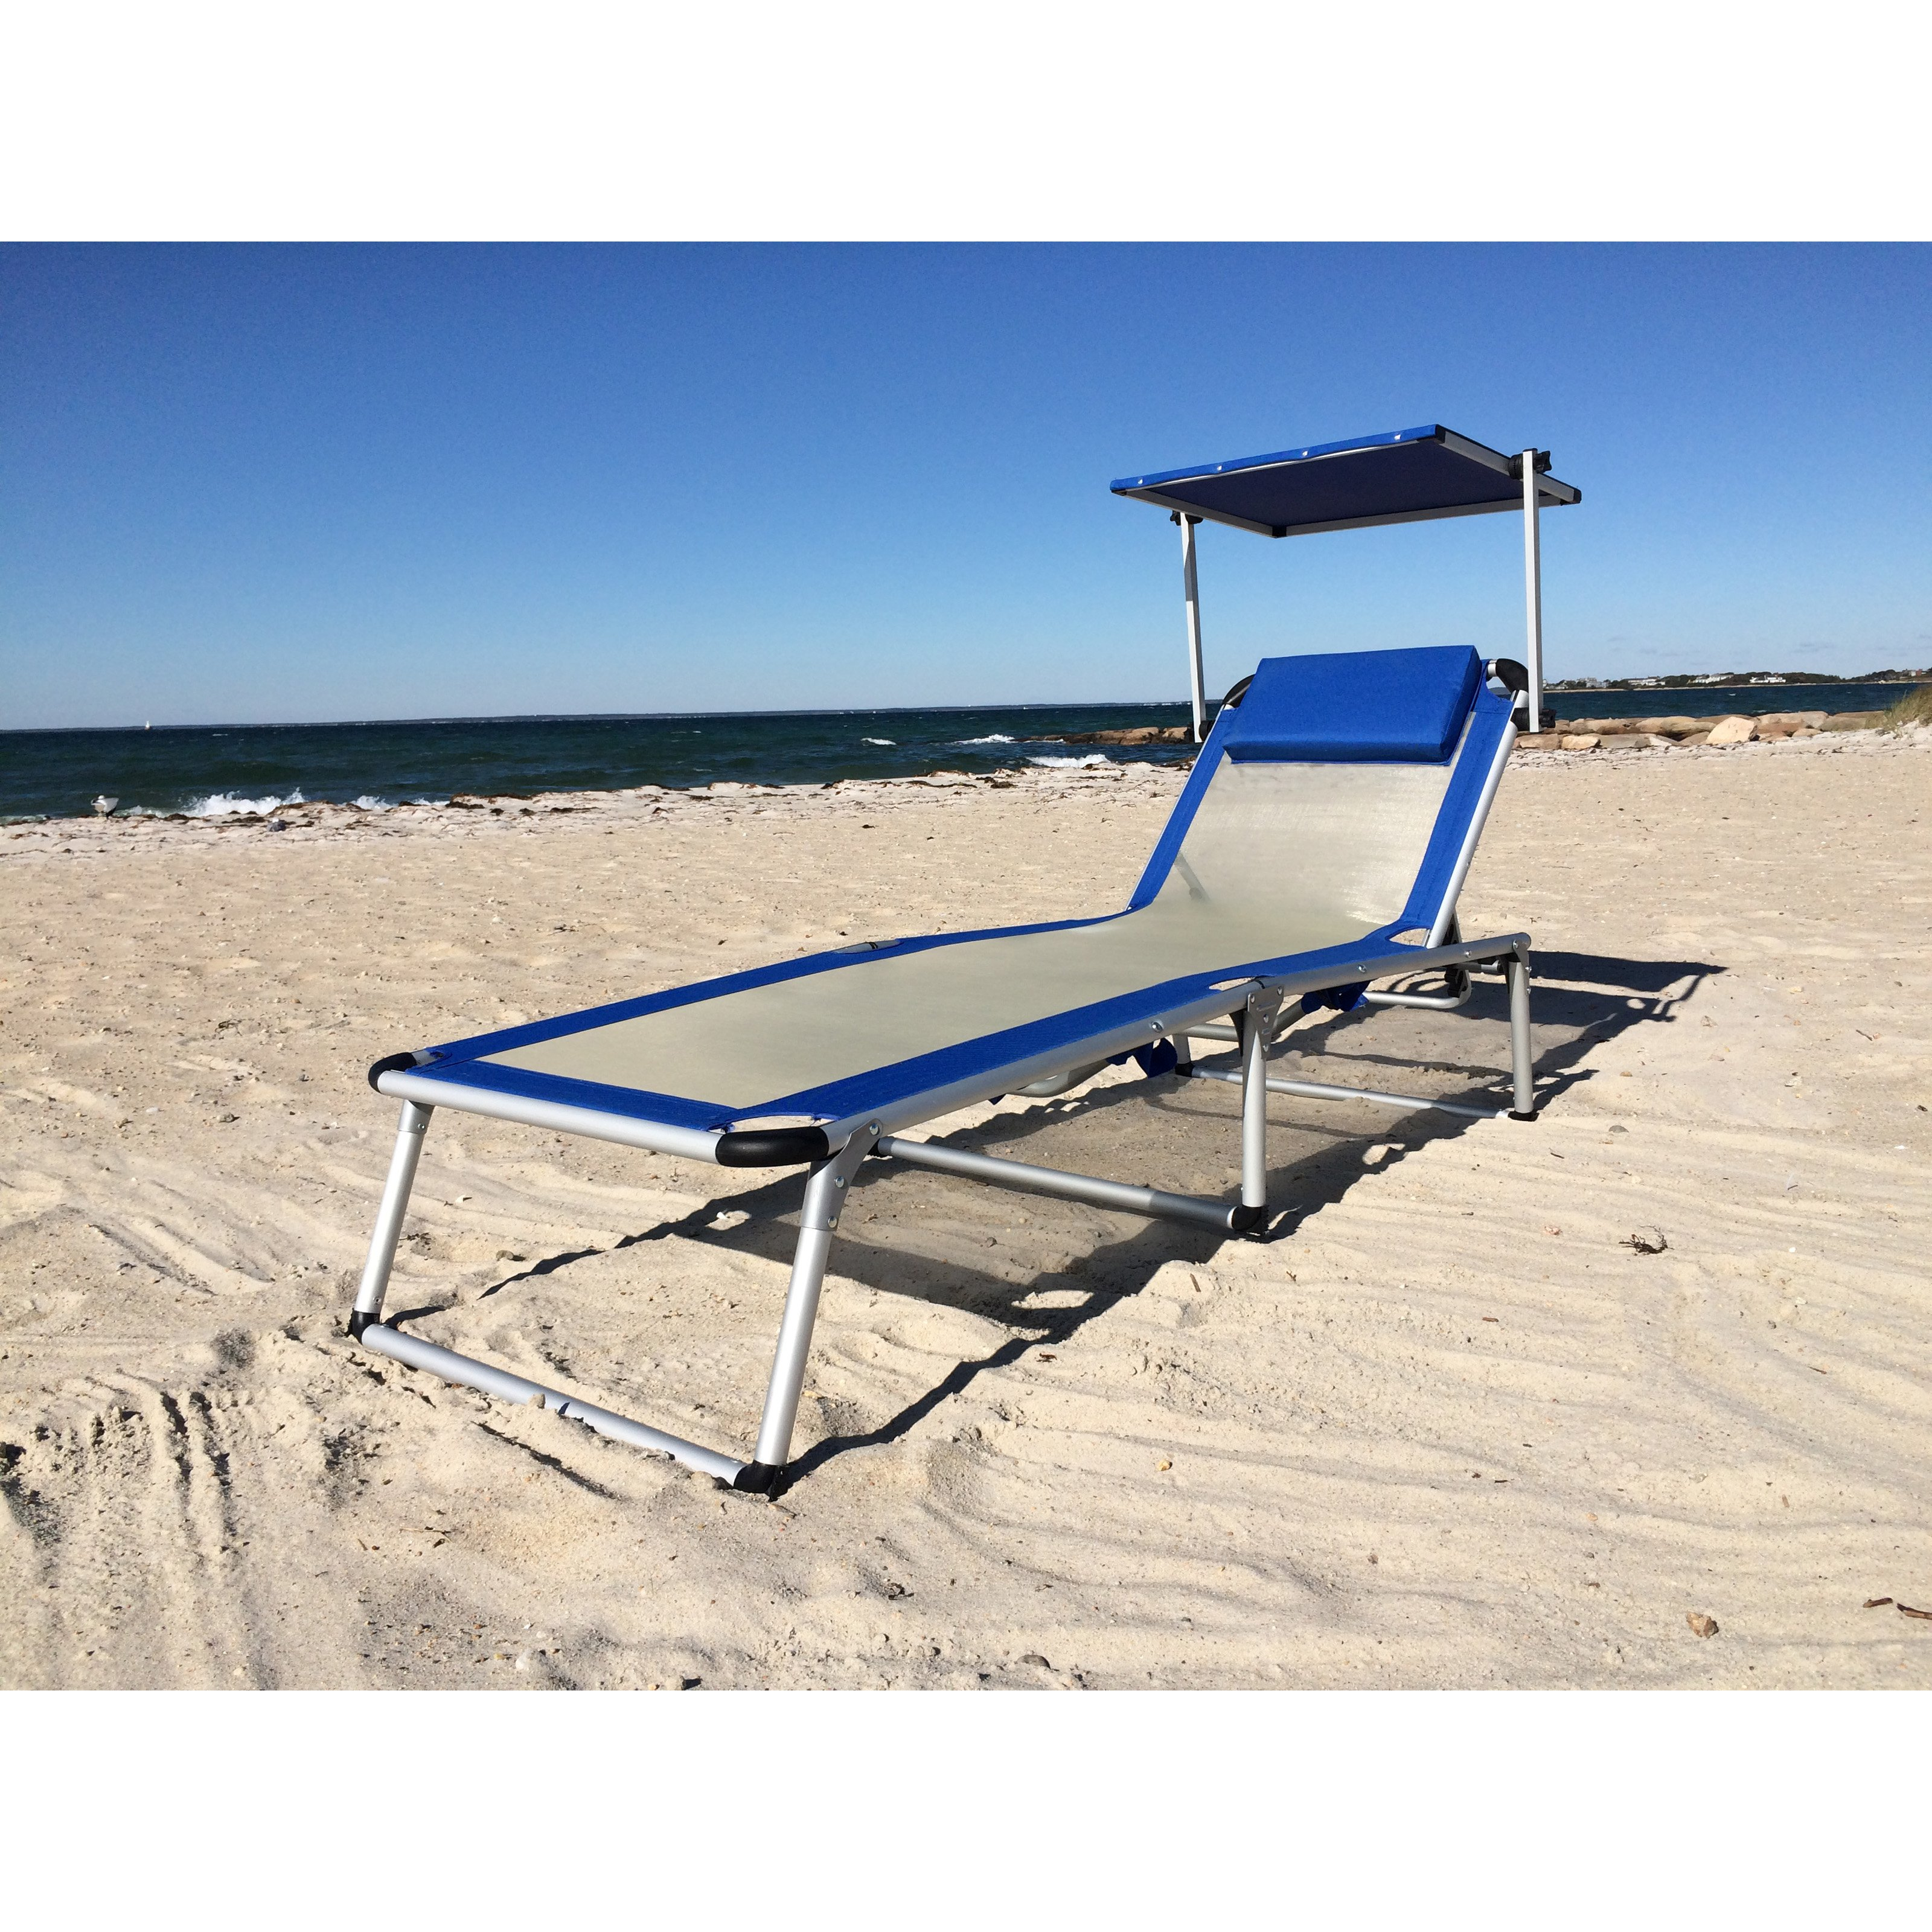 Ergo Lounger Cool Beach Lounger